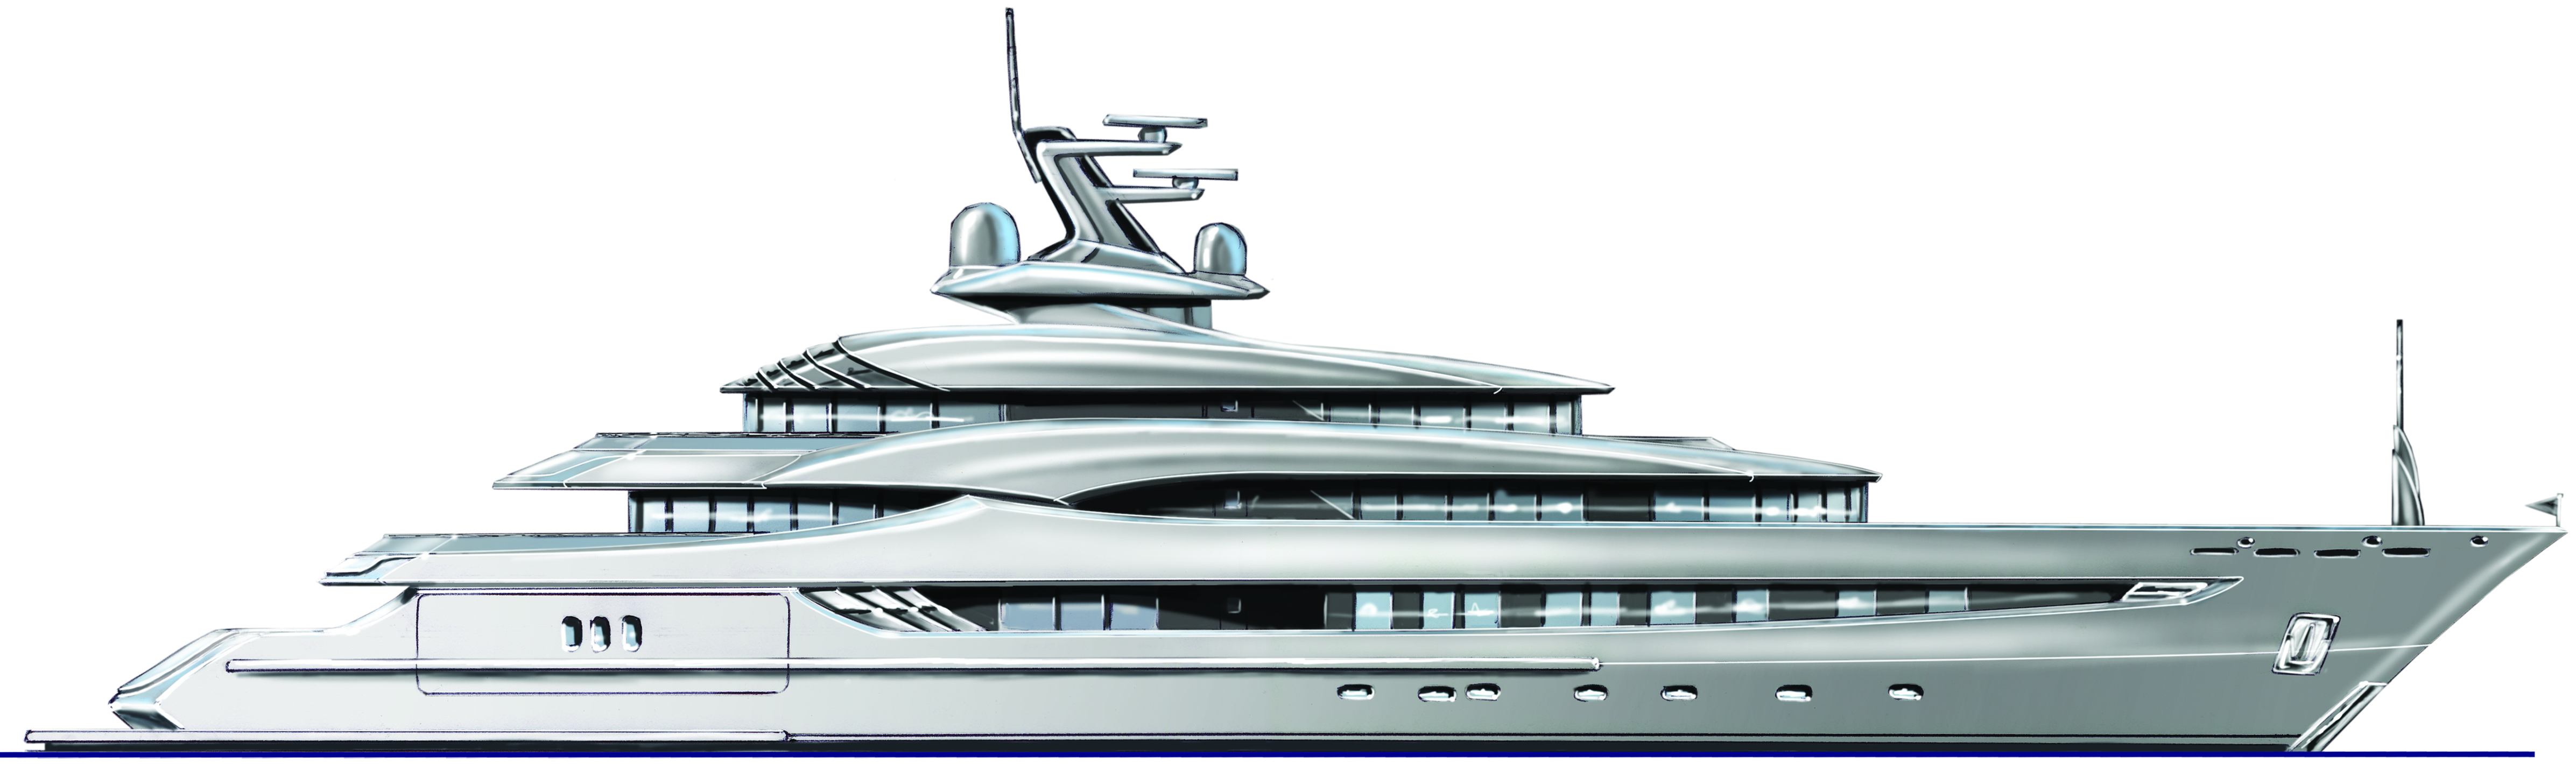 Art Line Yacht Design : More elegant and curvaceous yacht design called she